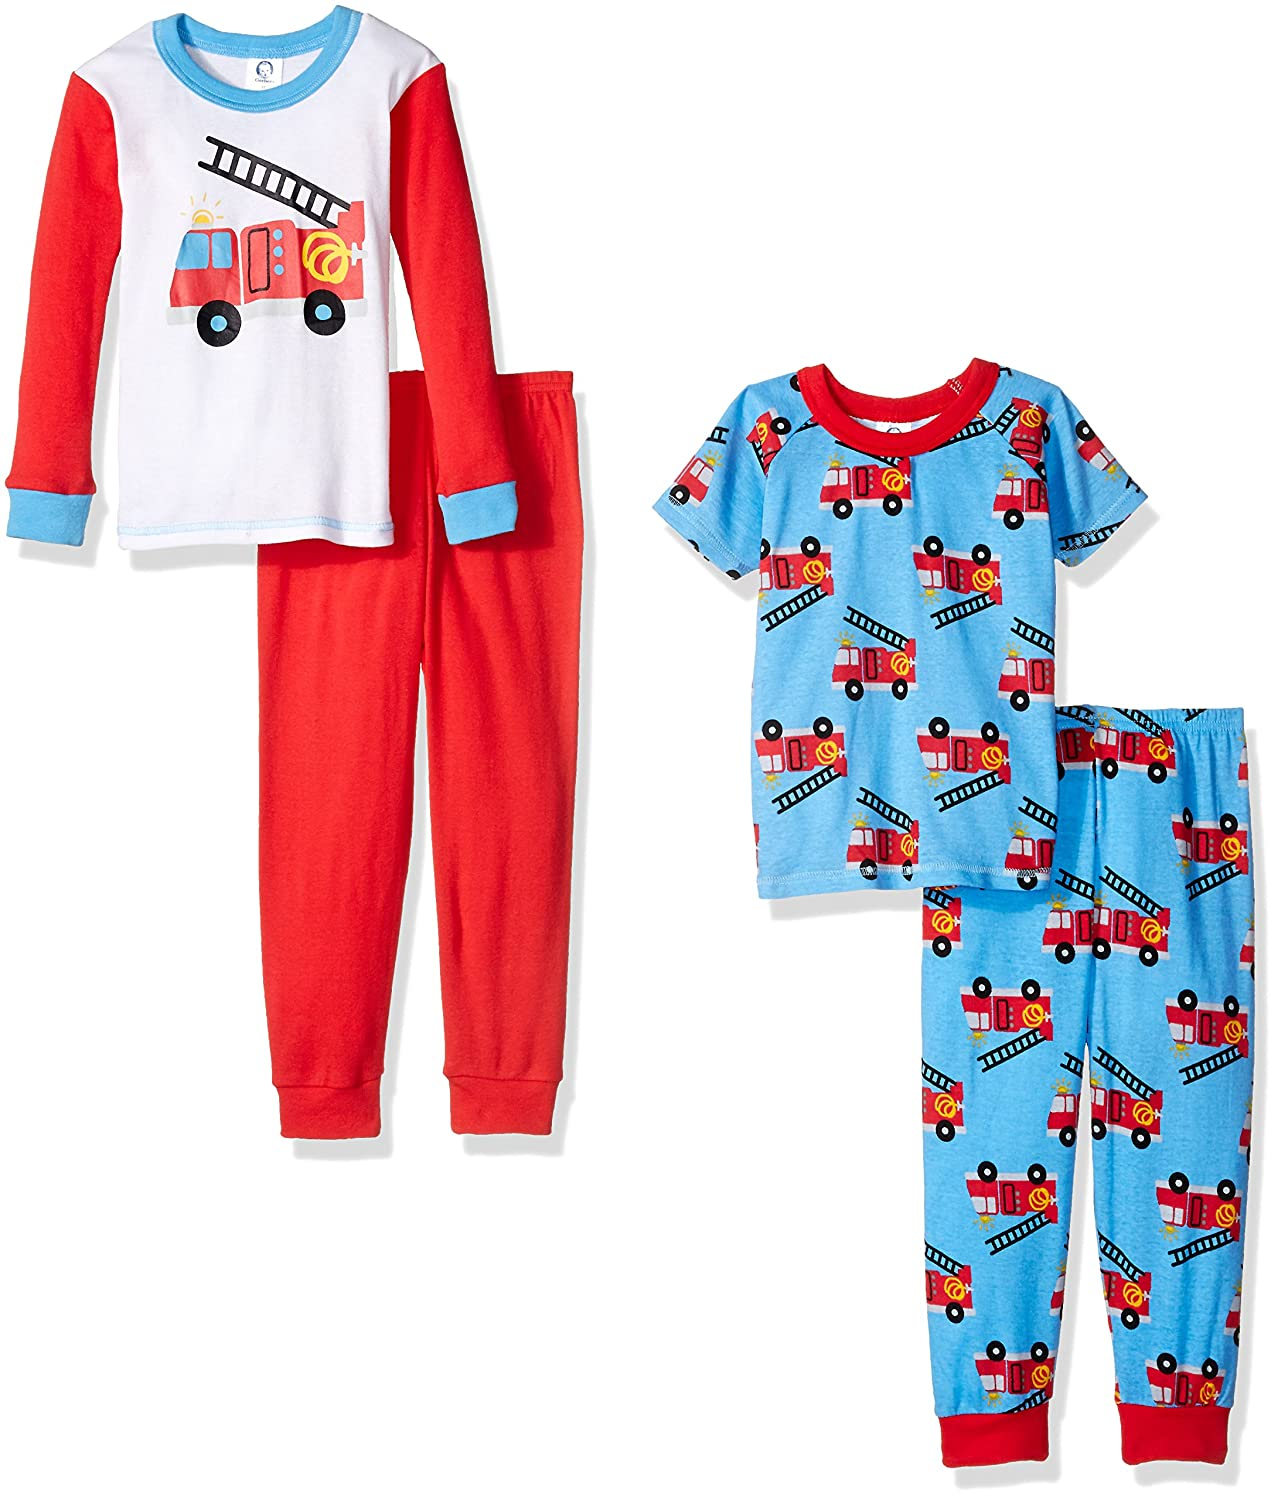 Gerber Baby Boys' 4-Piece Pajama Set Whales 12 Months Gerber Children' s Apparel 89619416ABO312M